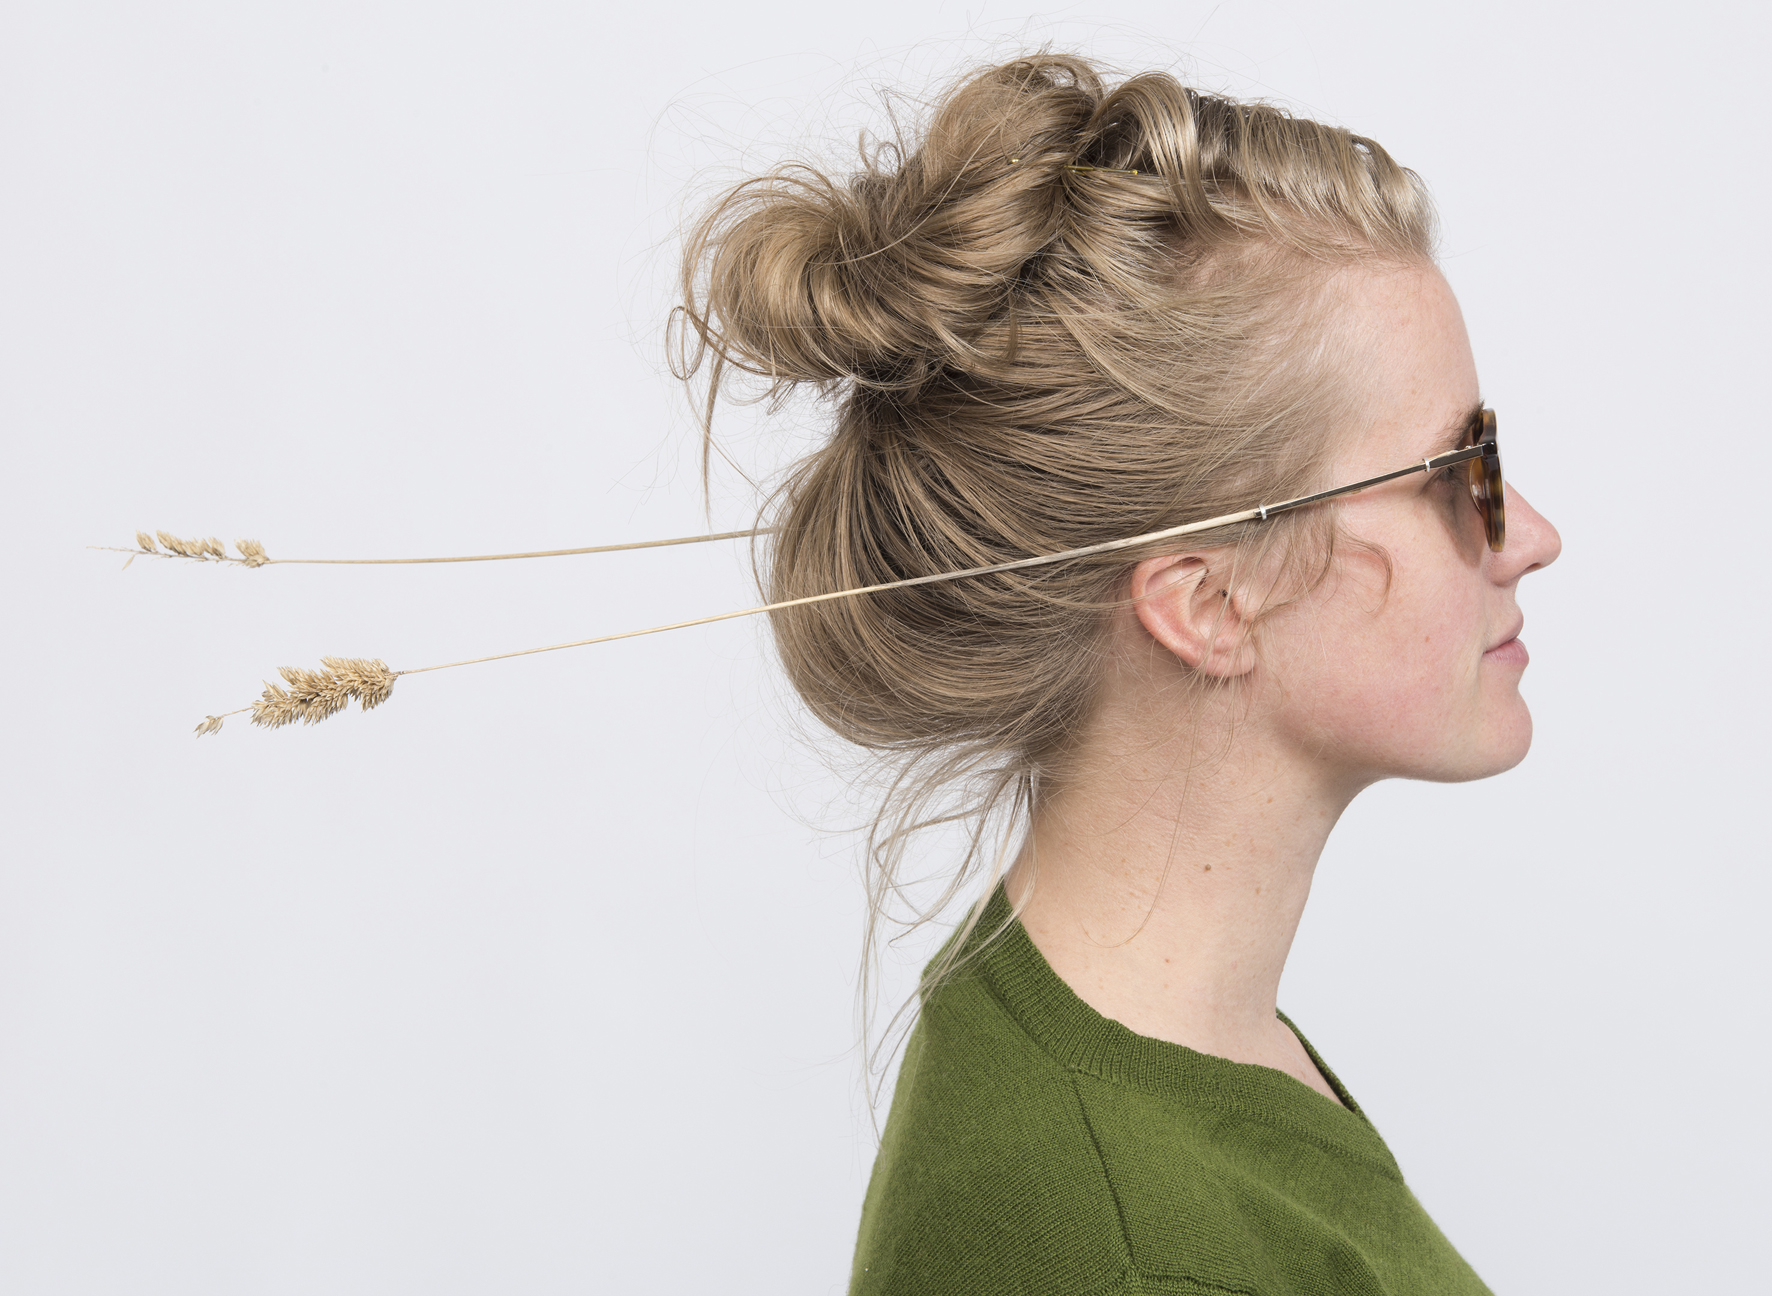 Grass Glasses (Performance Still)